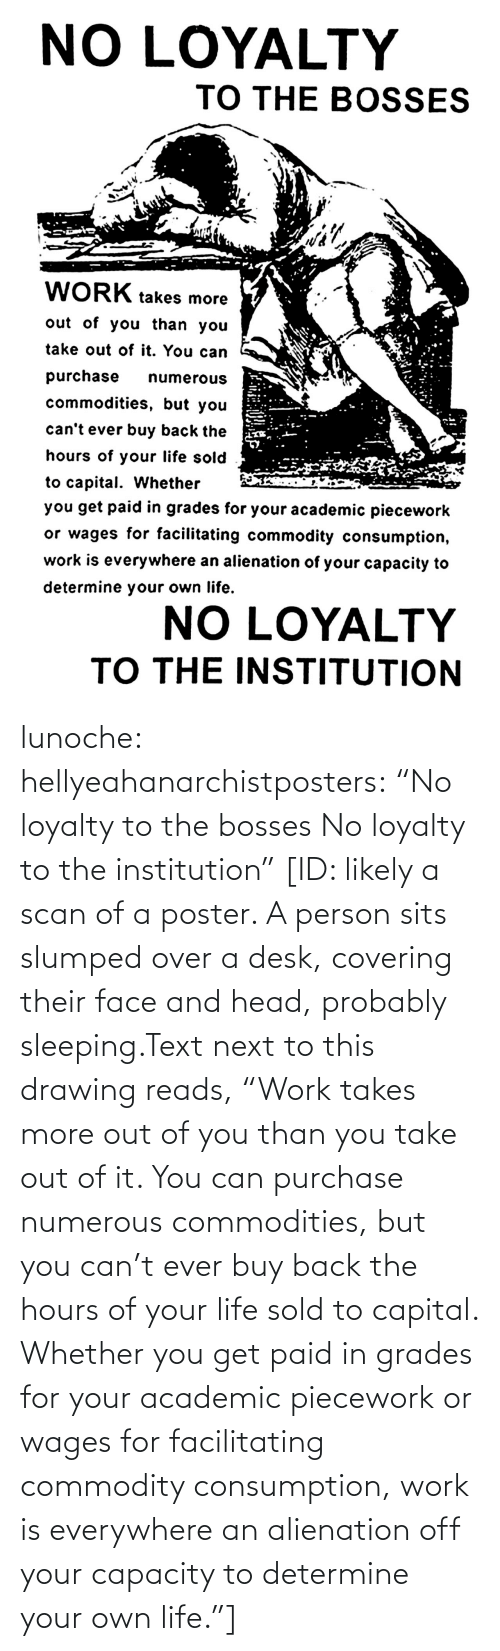 "Capital: lunoche:  hellyeahanarchistposters: ""No loyalty to the bosses No loyalty to the institution""   [ID: likely a scan of a poster. A person sits slumped over a desk, covering their face and head, probably sleeping.Text next to this drawing reads, ""Work takes more out of you than you take out of it. You can purchase numerous commodities, but you can't ever buy back the hours of your life sold to capital. Whether you get paid in grades for your academic piecework or wages for facilitating commodity consumption, work is everywhere an alienation off your capacity to determine your own life.""]"